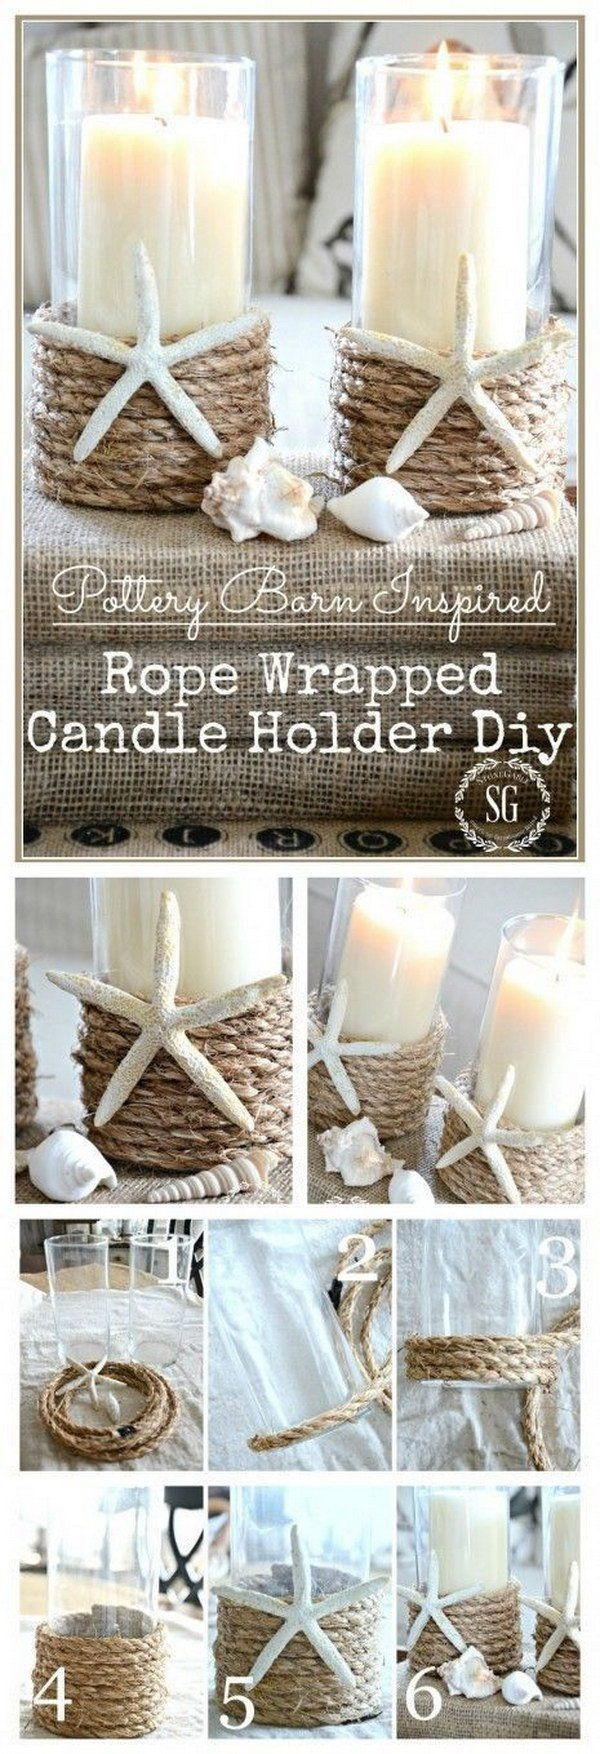 Home home decoration candles amp candle holders scented candles - Diy Beach Inspired Holiday Decoration Ideas Beach Craftsdiy Craftsdecor Craftscandleholdersvotive Candleshome